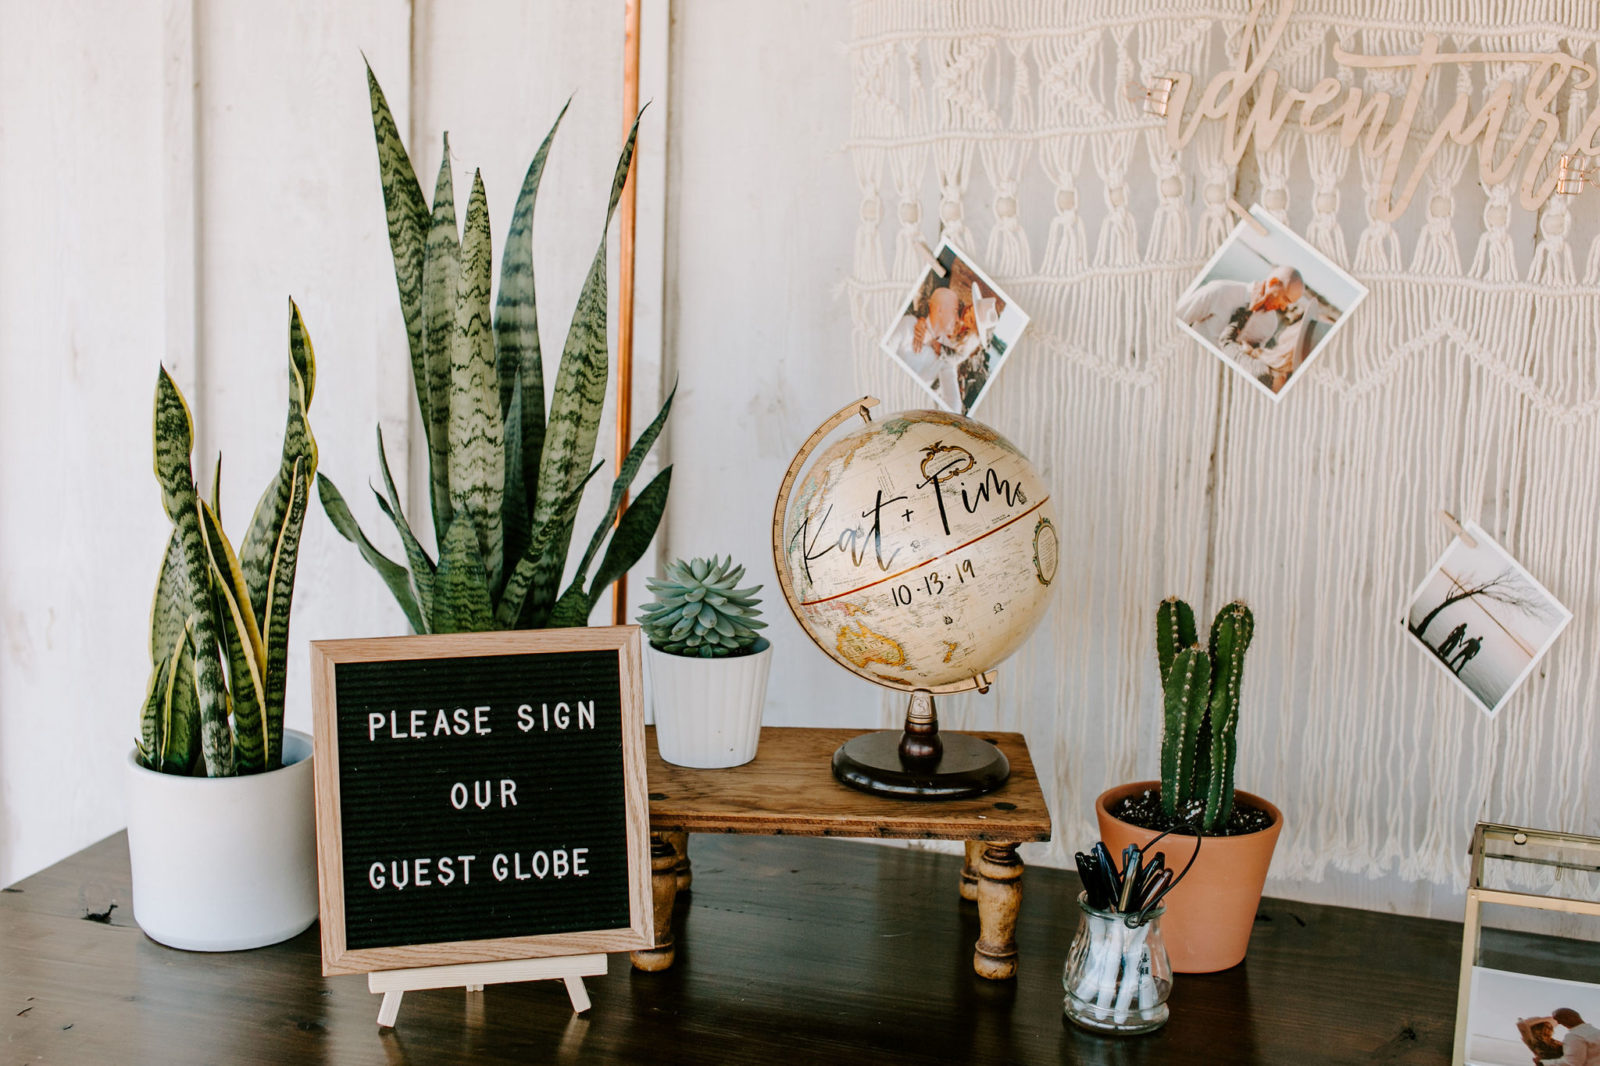 Wedding Guest Book Decor: Bohemian Big White Barn Wedding